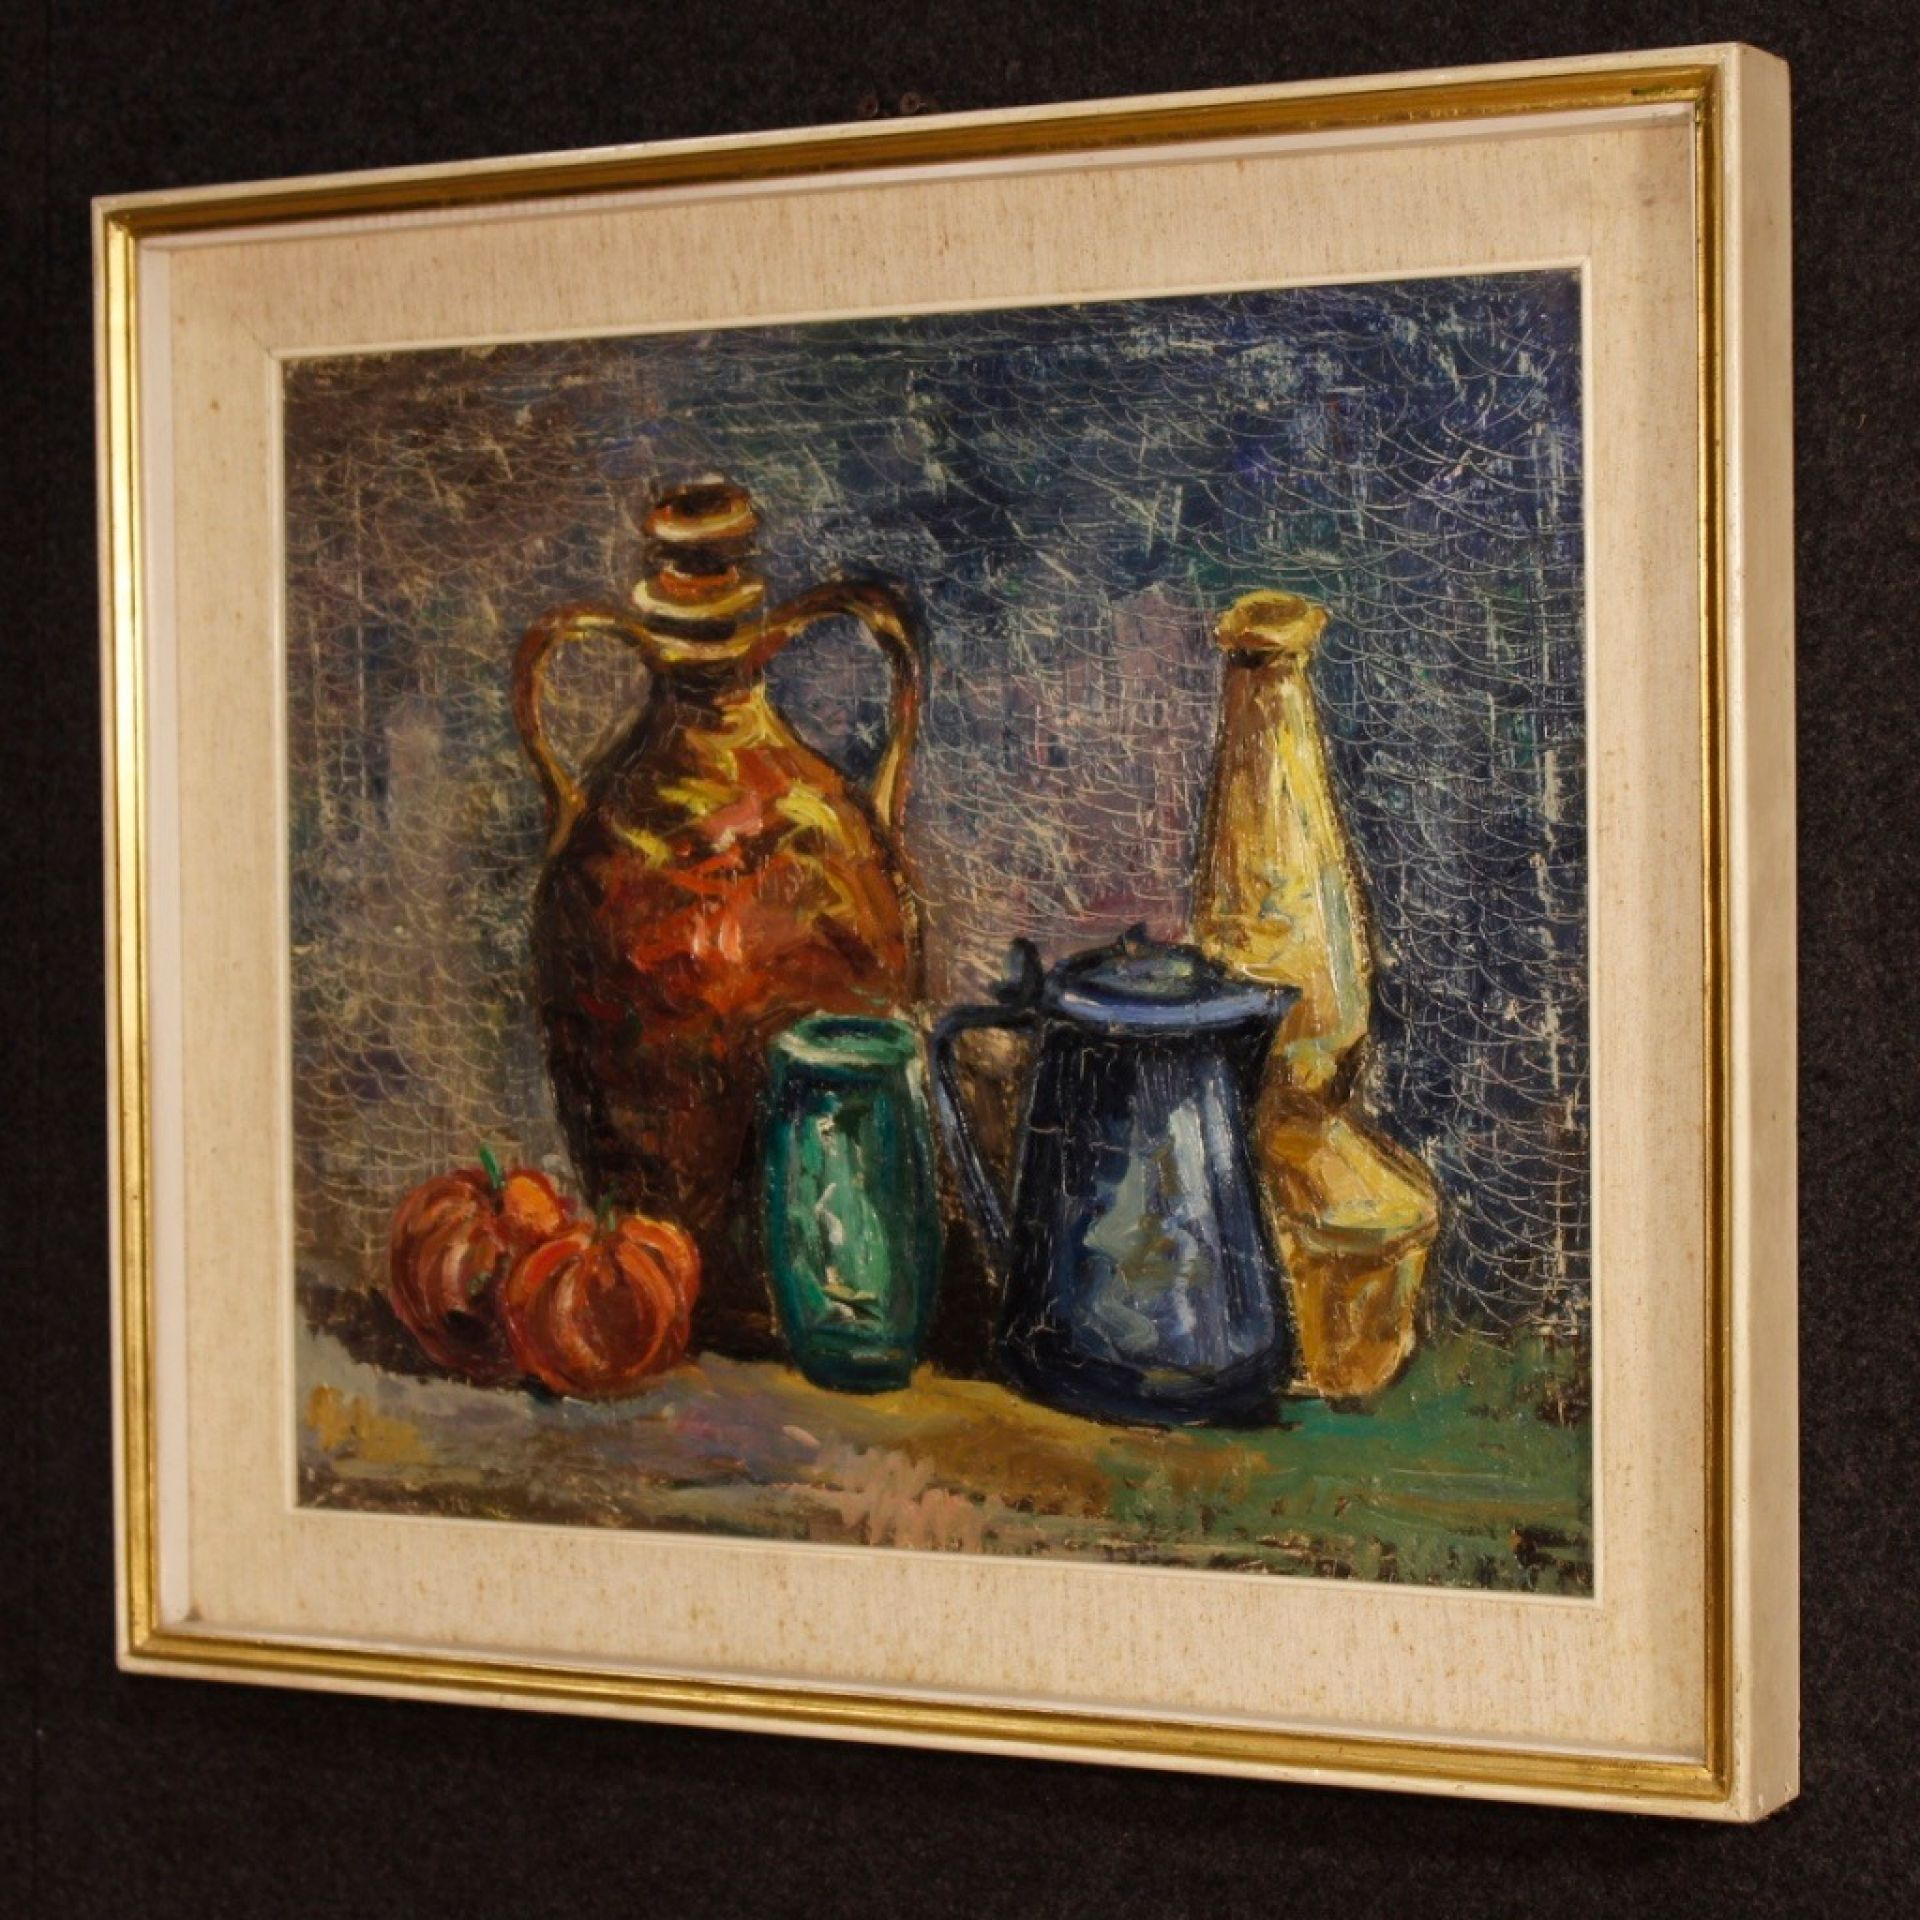 20th Century Oil on Canvas Italian Still Life Impressionist Style Painting, 1970